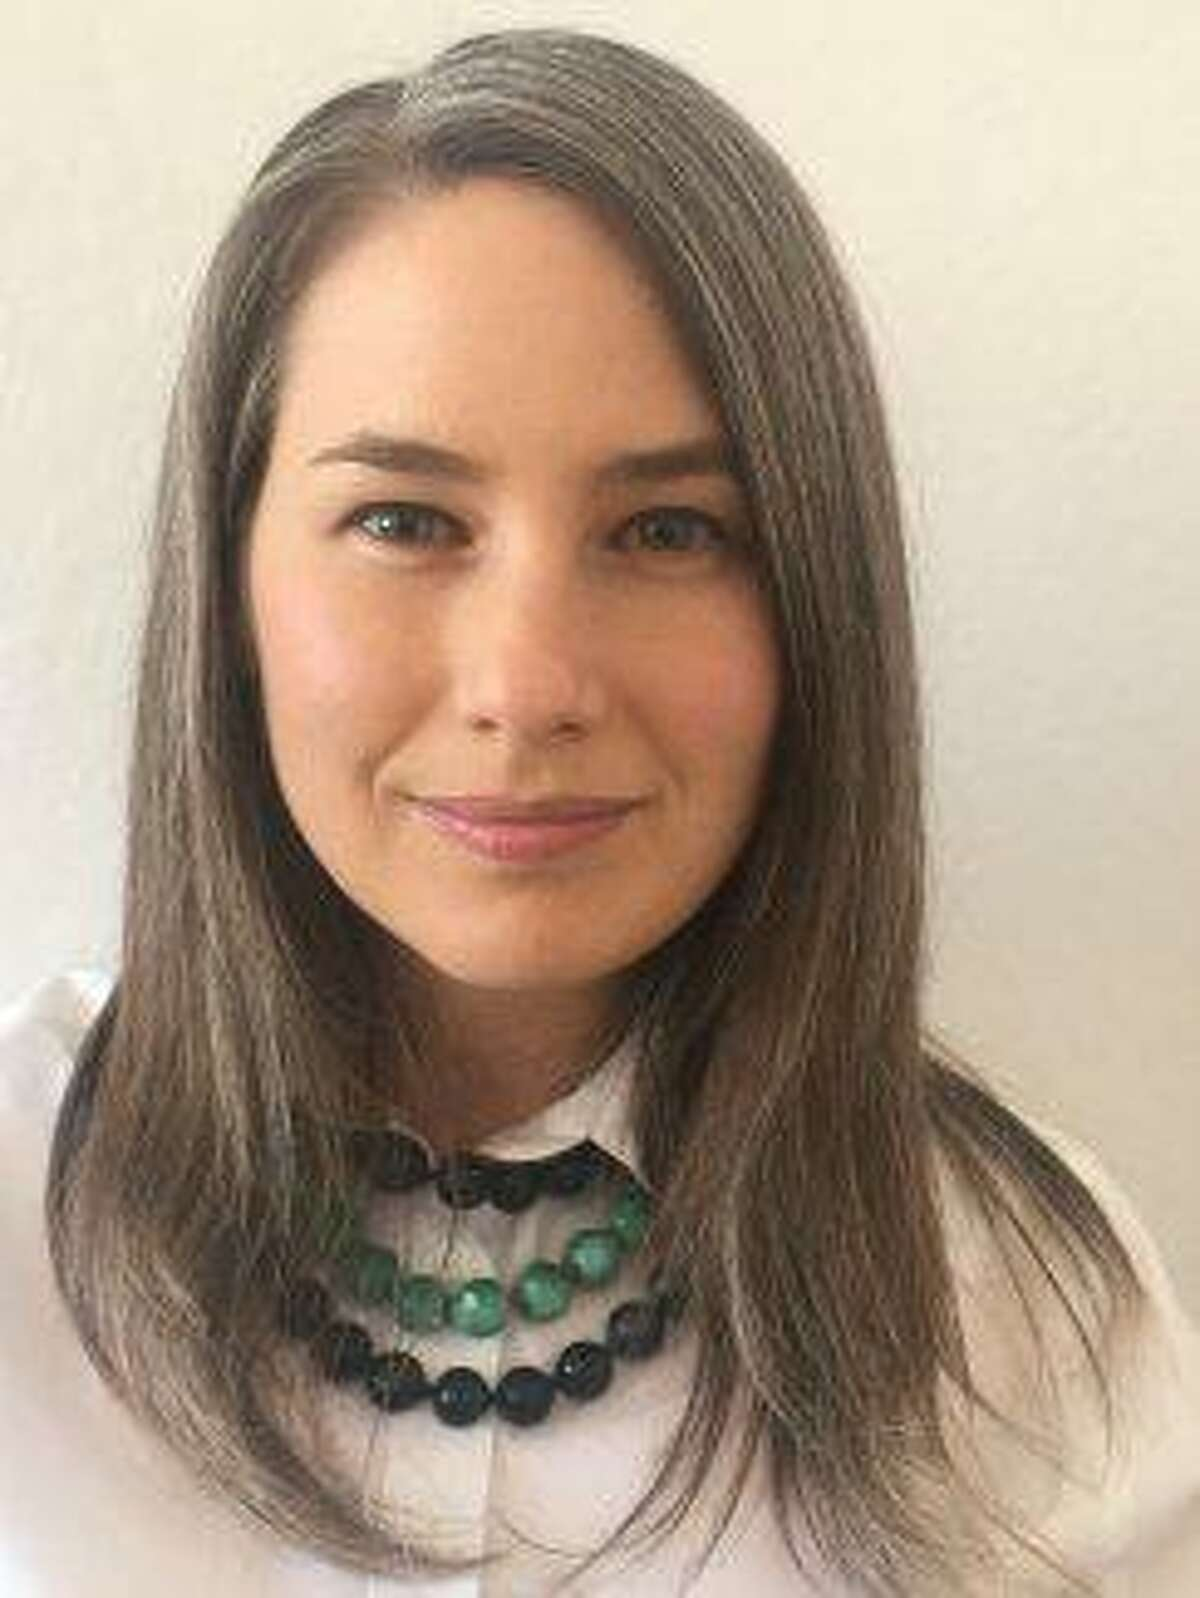 Emily Handlin is the assistant curator of exhibitions and programs at the Katonah Museum of Art.